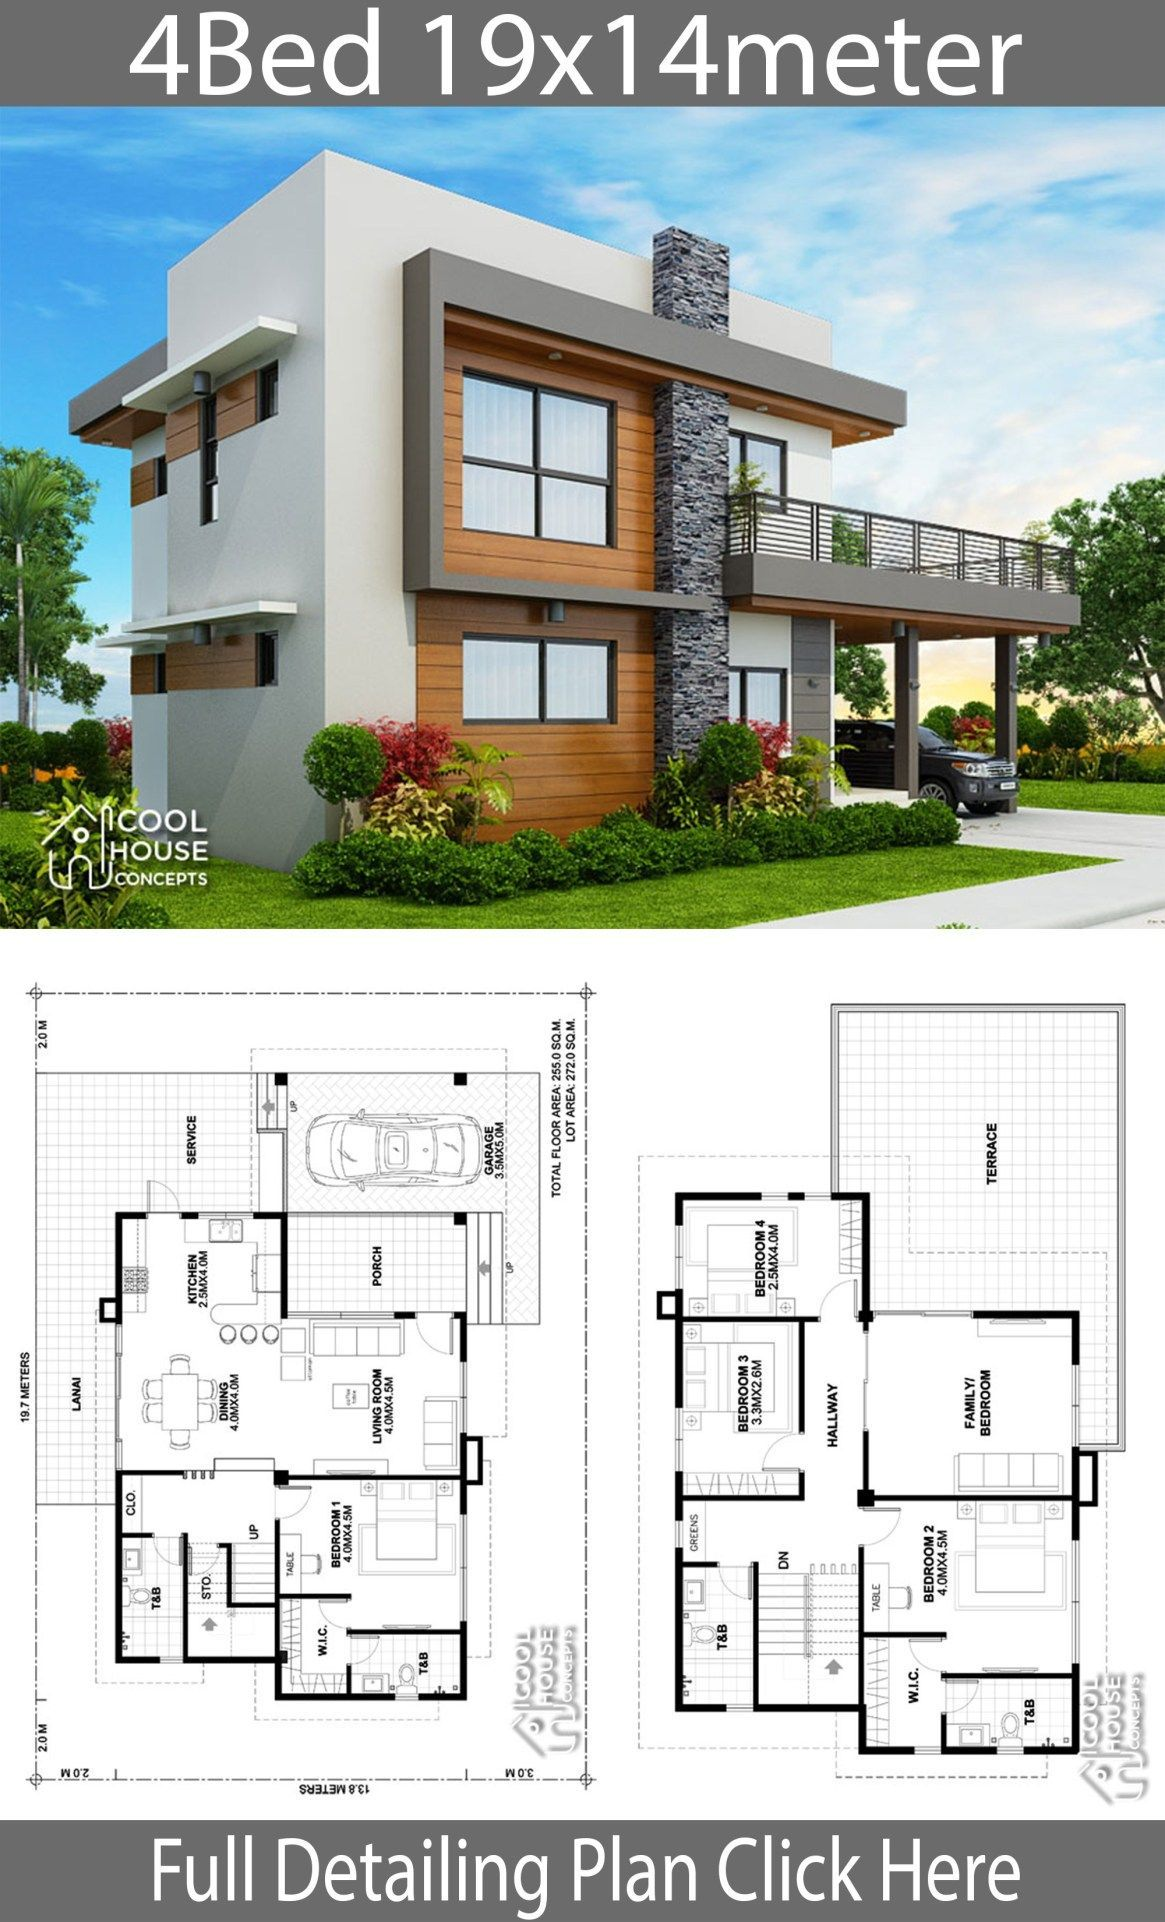 Home Design Plan 19x14m With 4 Bedrooms Home Ideas In 2020 Home Design Plan 4 Bedroom House Designs Home Design Plans